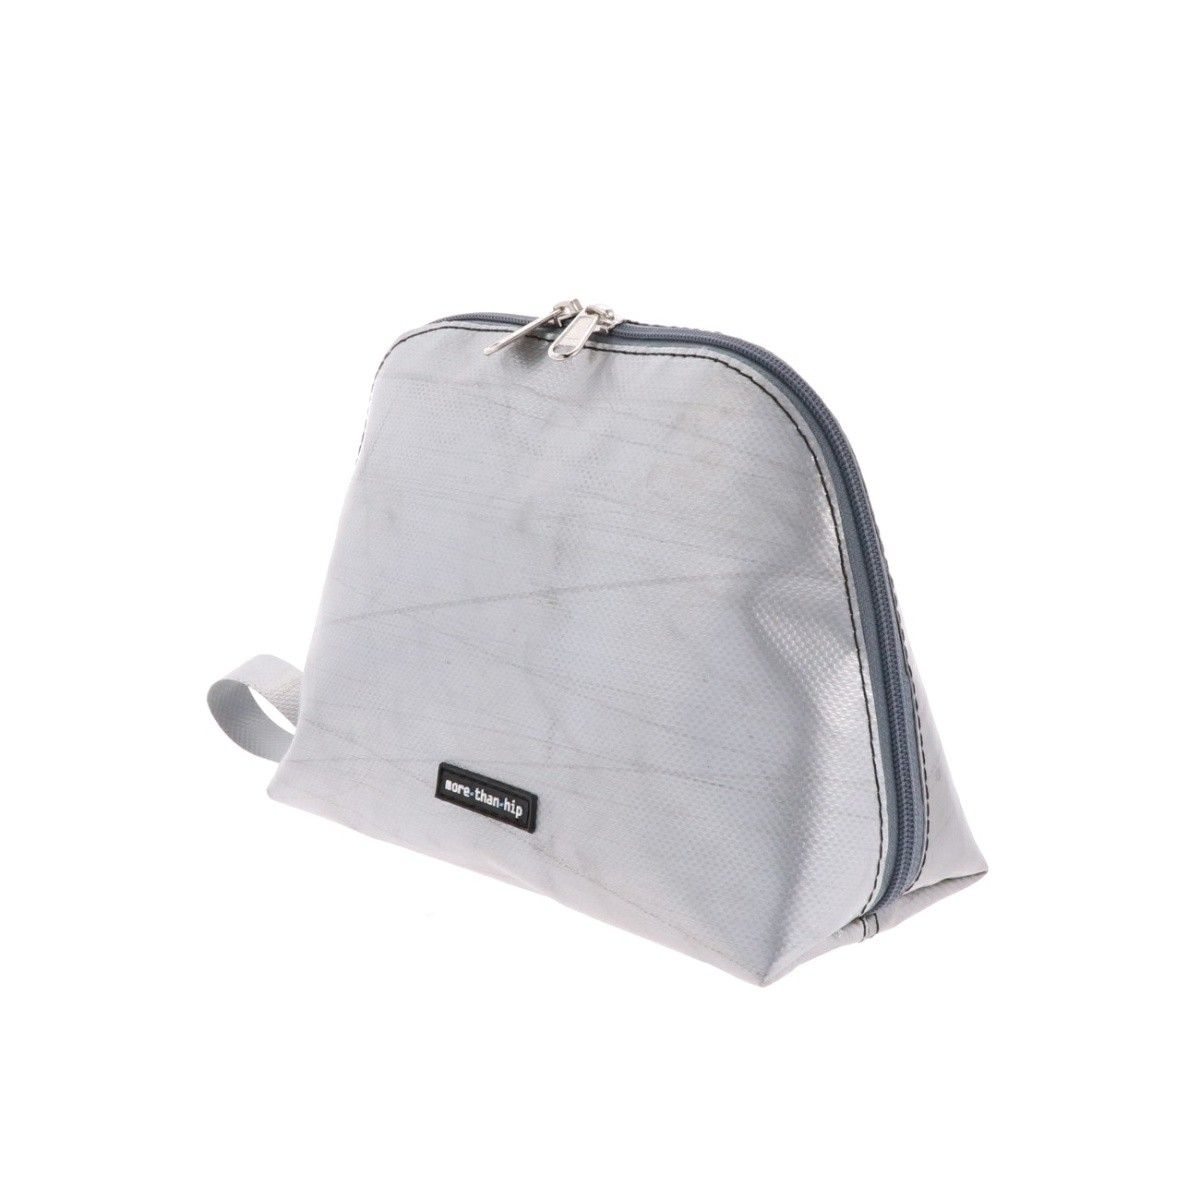 Lucca toiletry bag